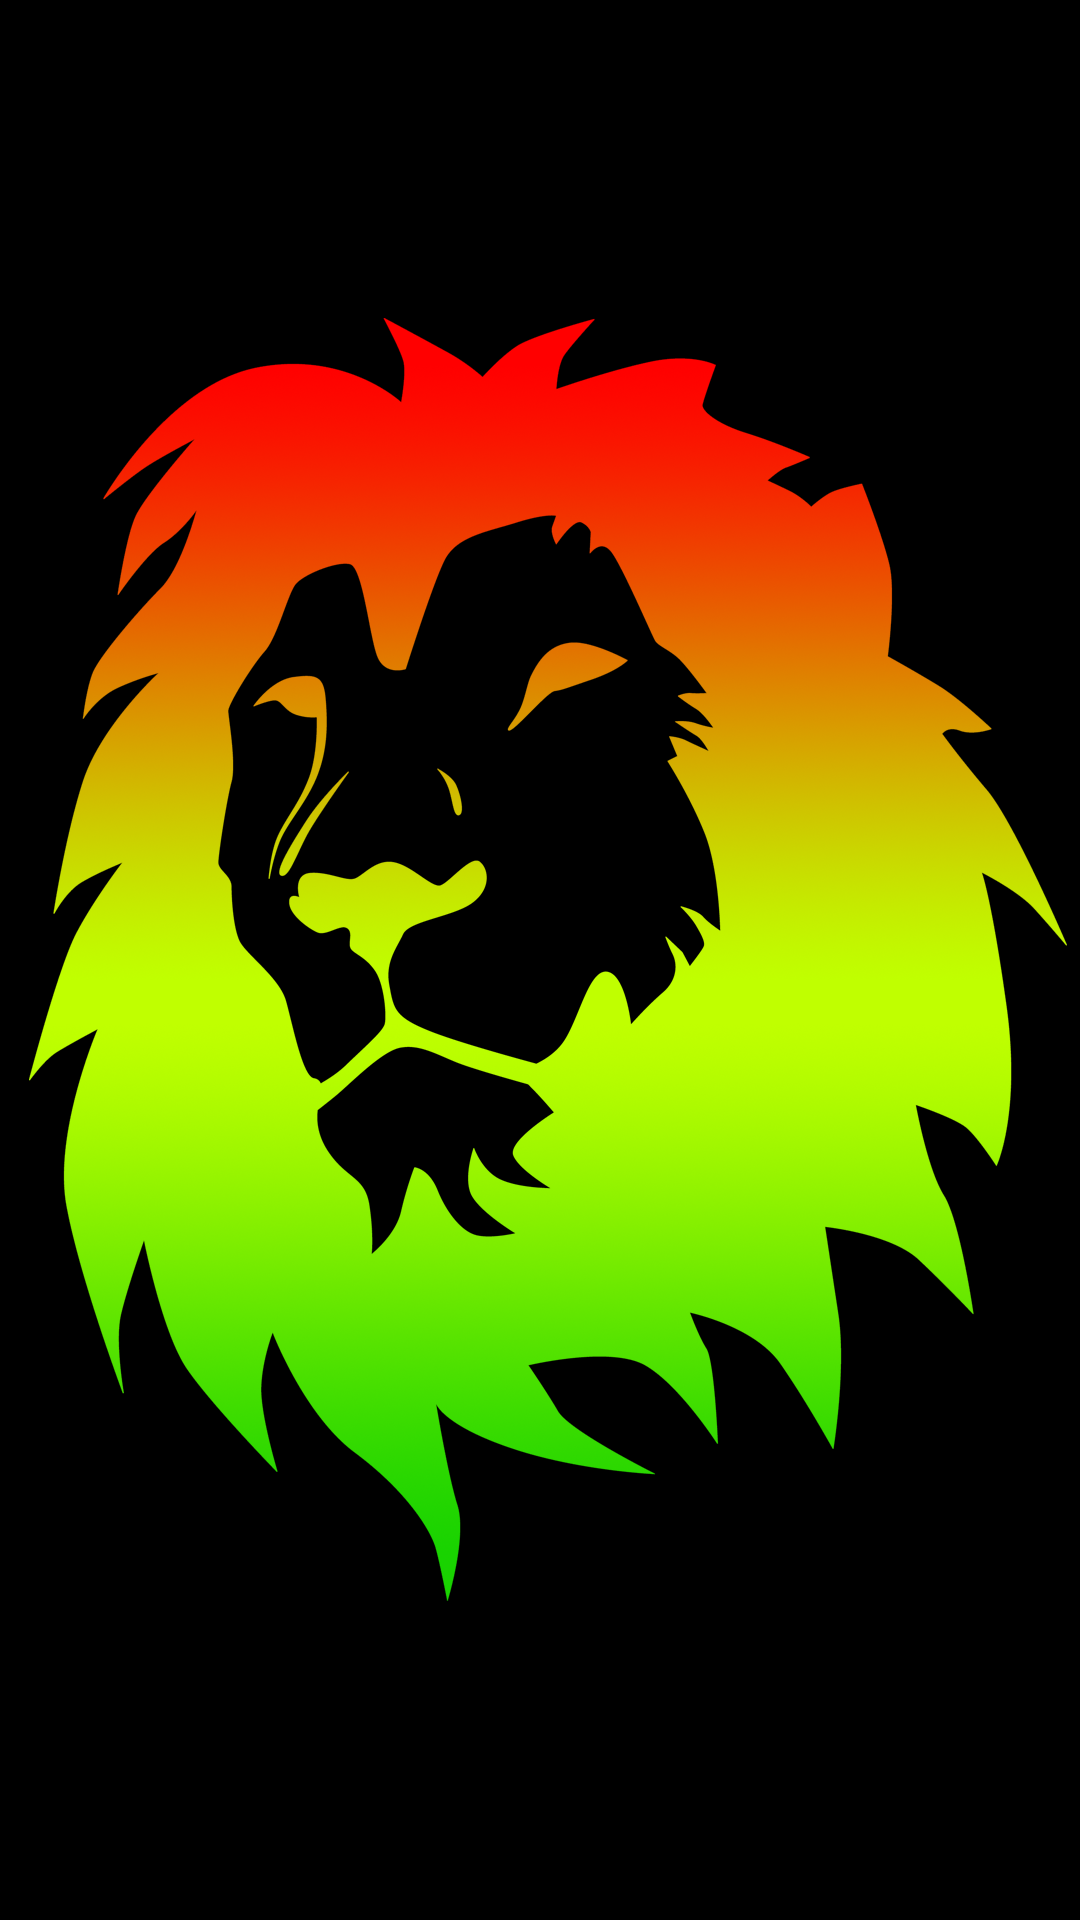 Rasta Color Lion 1080 X 1920 FHD Wallpaper